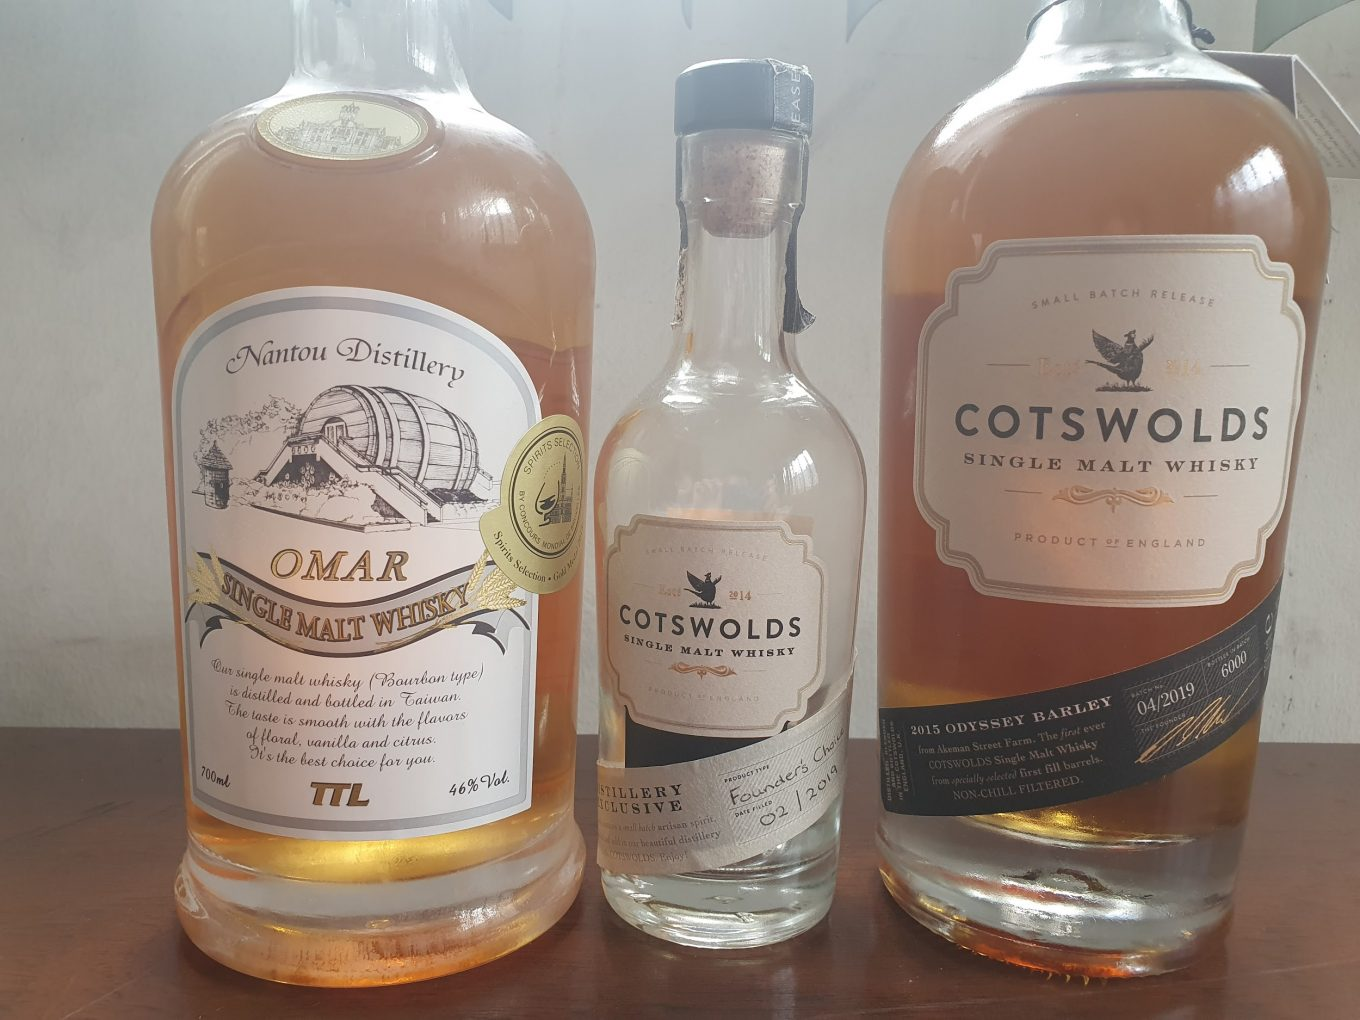 Cotswolds whiskies and Omar